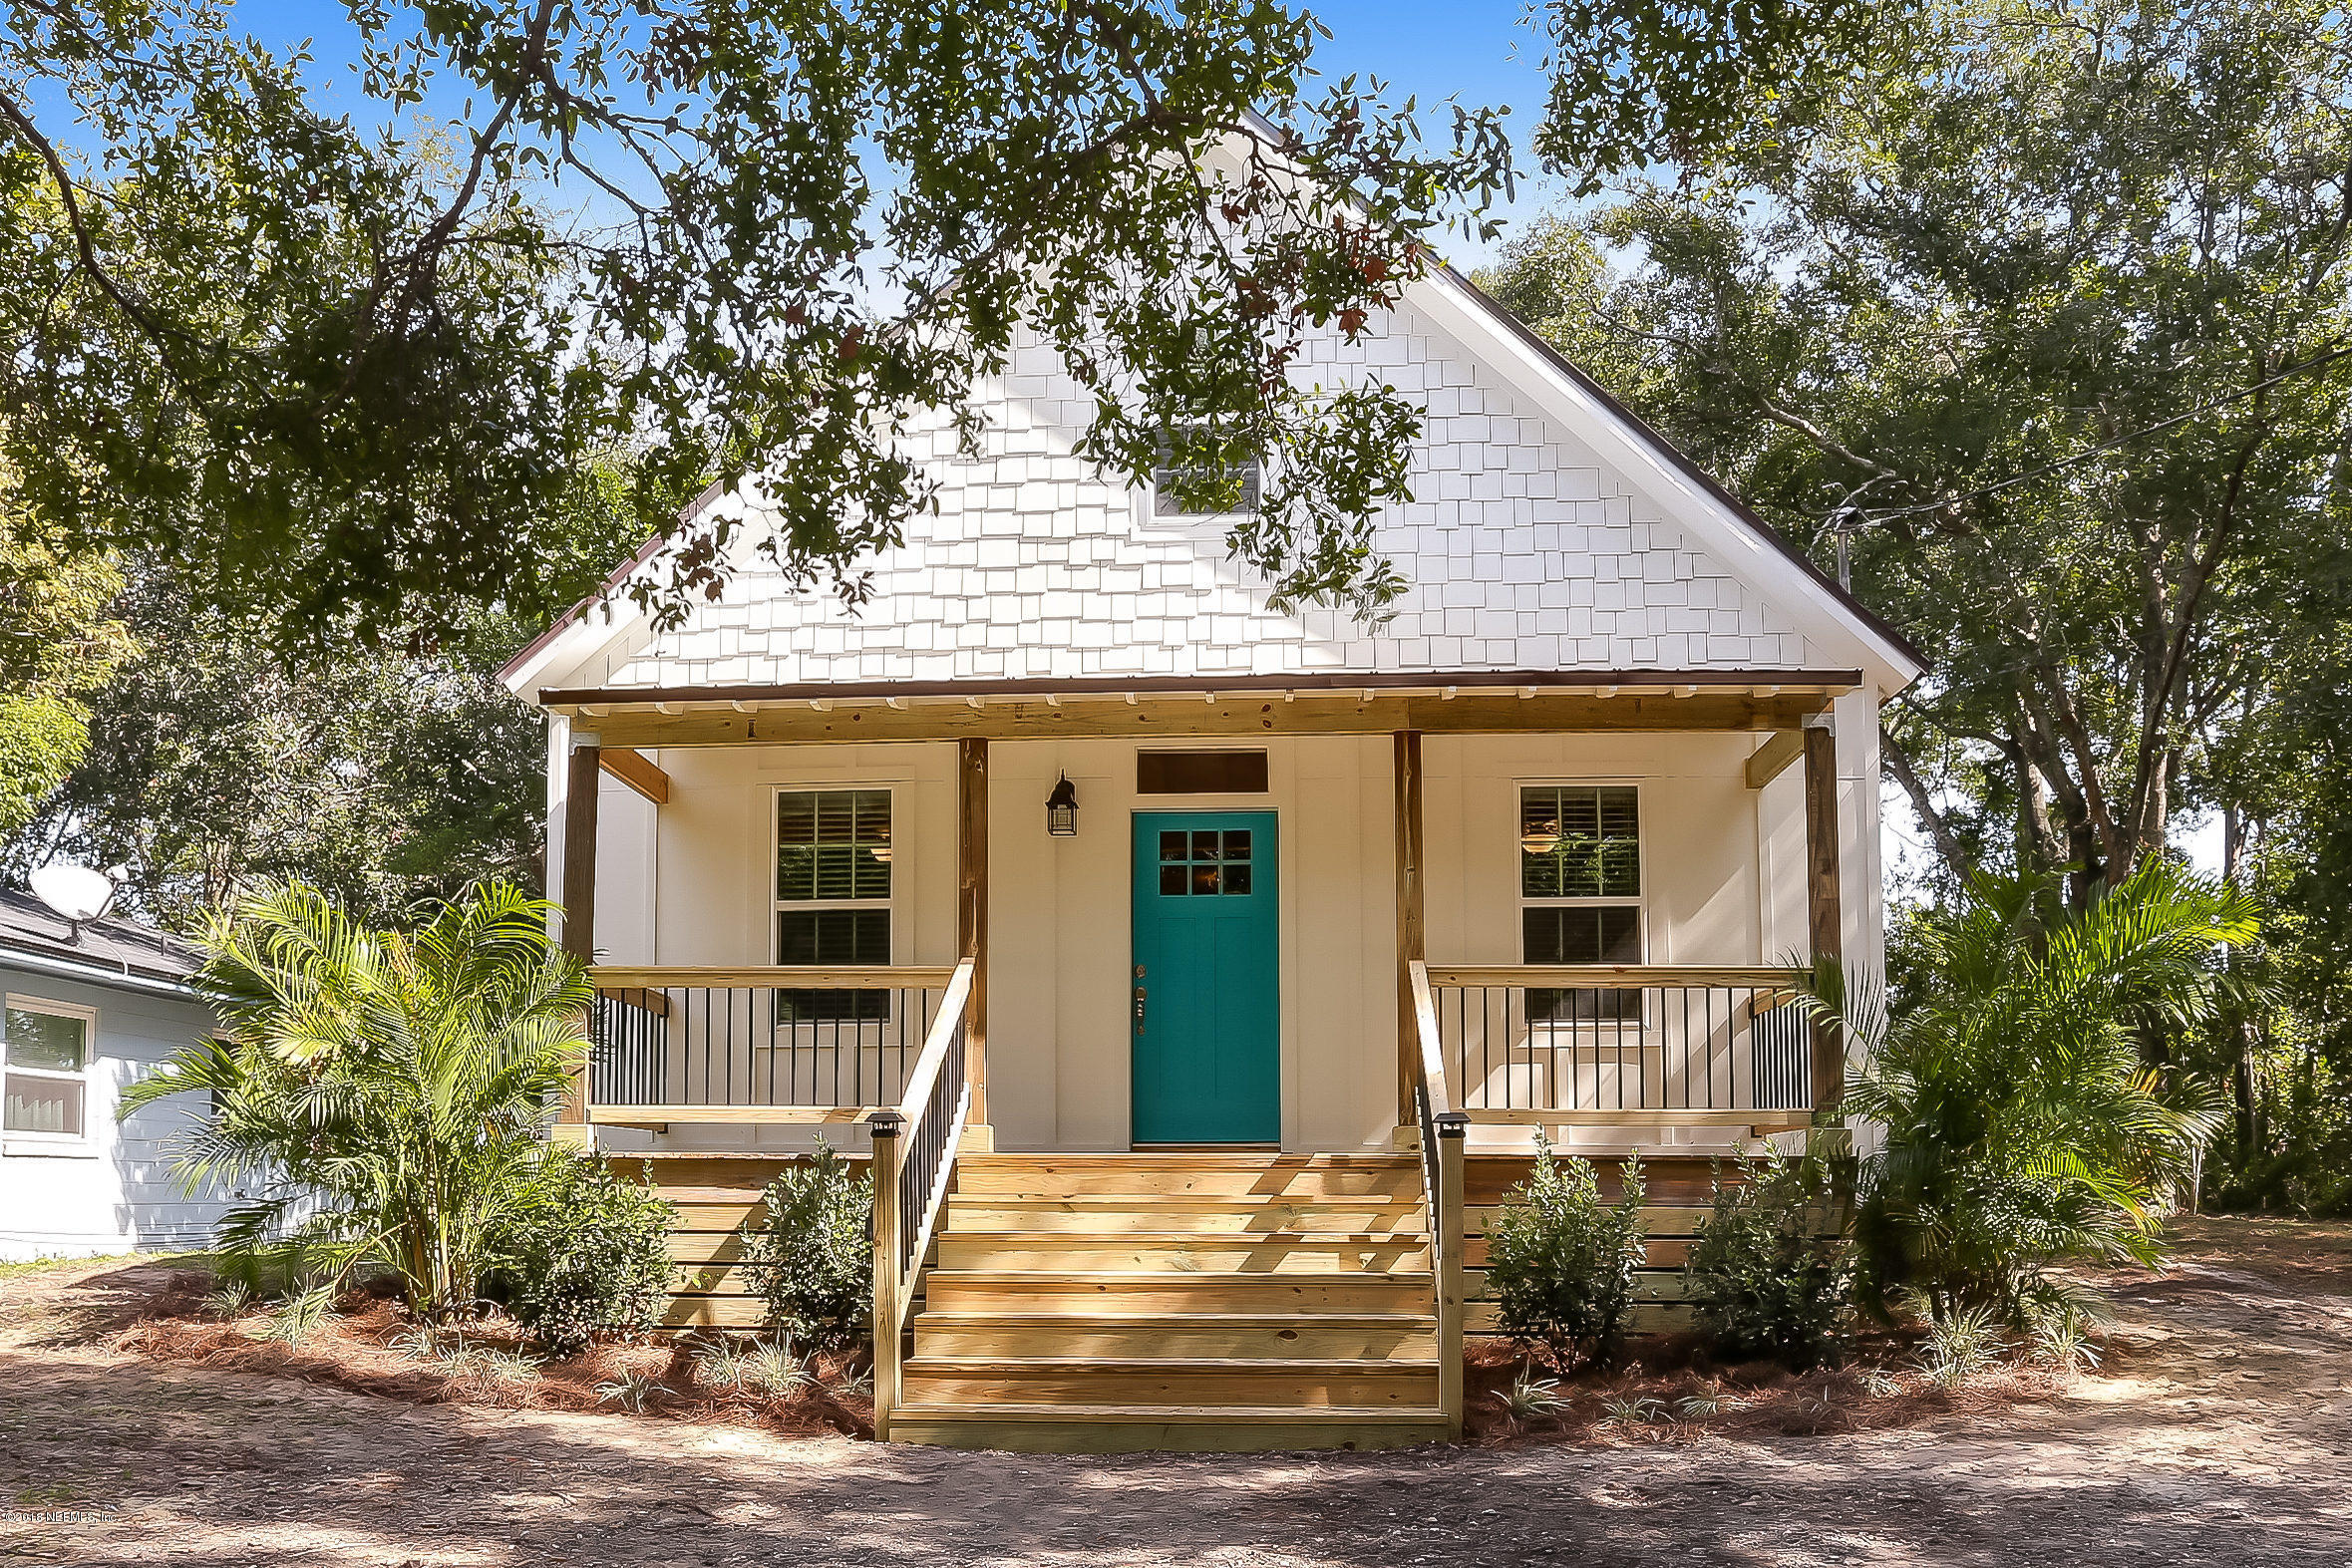 314 9TH, FERNANDINA BEACH, FLORIDA 32034, 3 Bedrooms Bedrooms, ,1 BathroomBathrooms,Residential - single family,For sale,9TH,964905